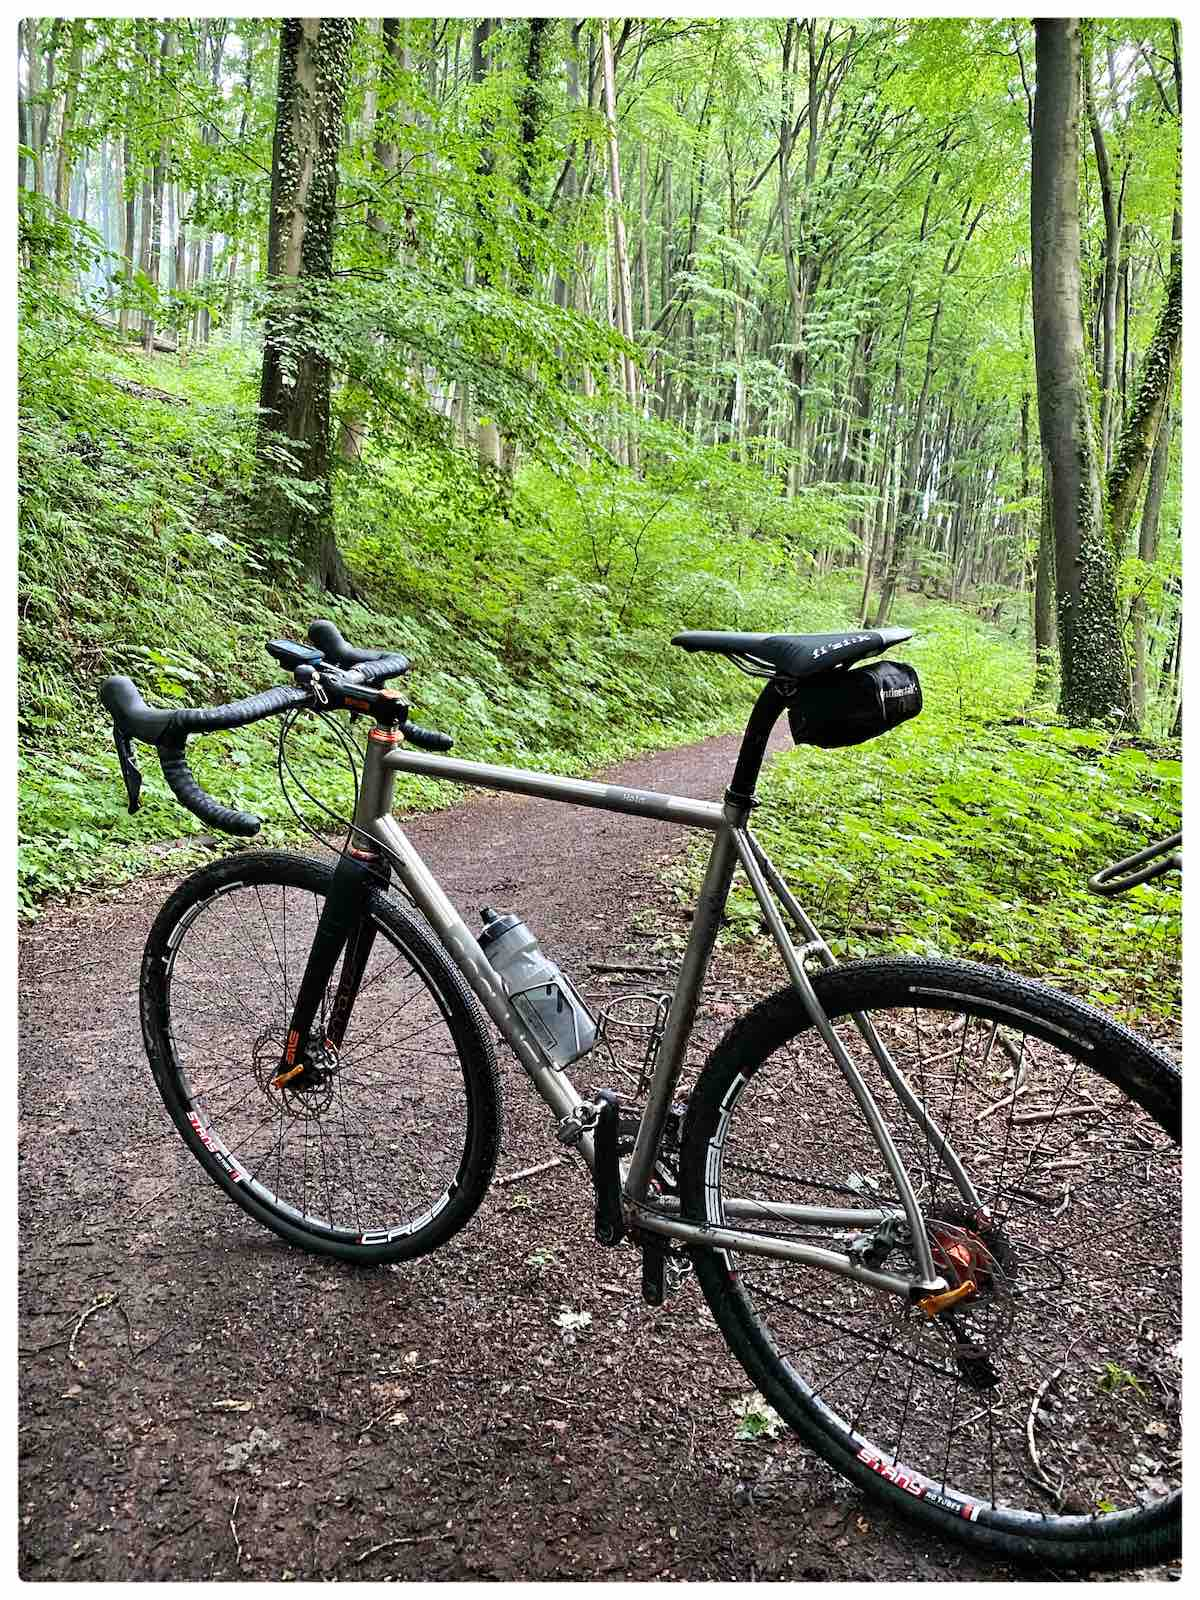 bikerumor pic of the day a titanium gravel bike is on a packed earth trail amid a bright green forest in Saarland Germany.